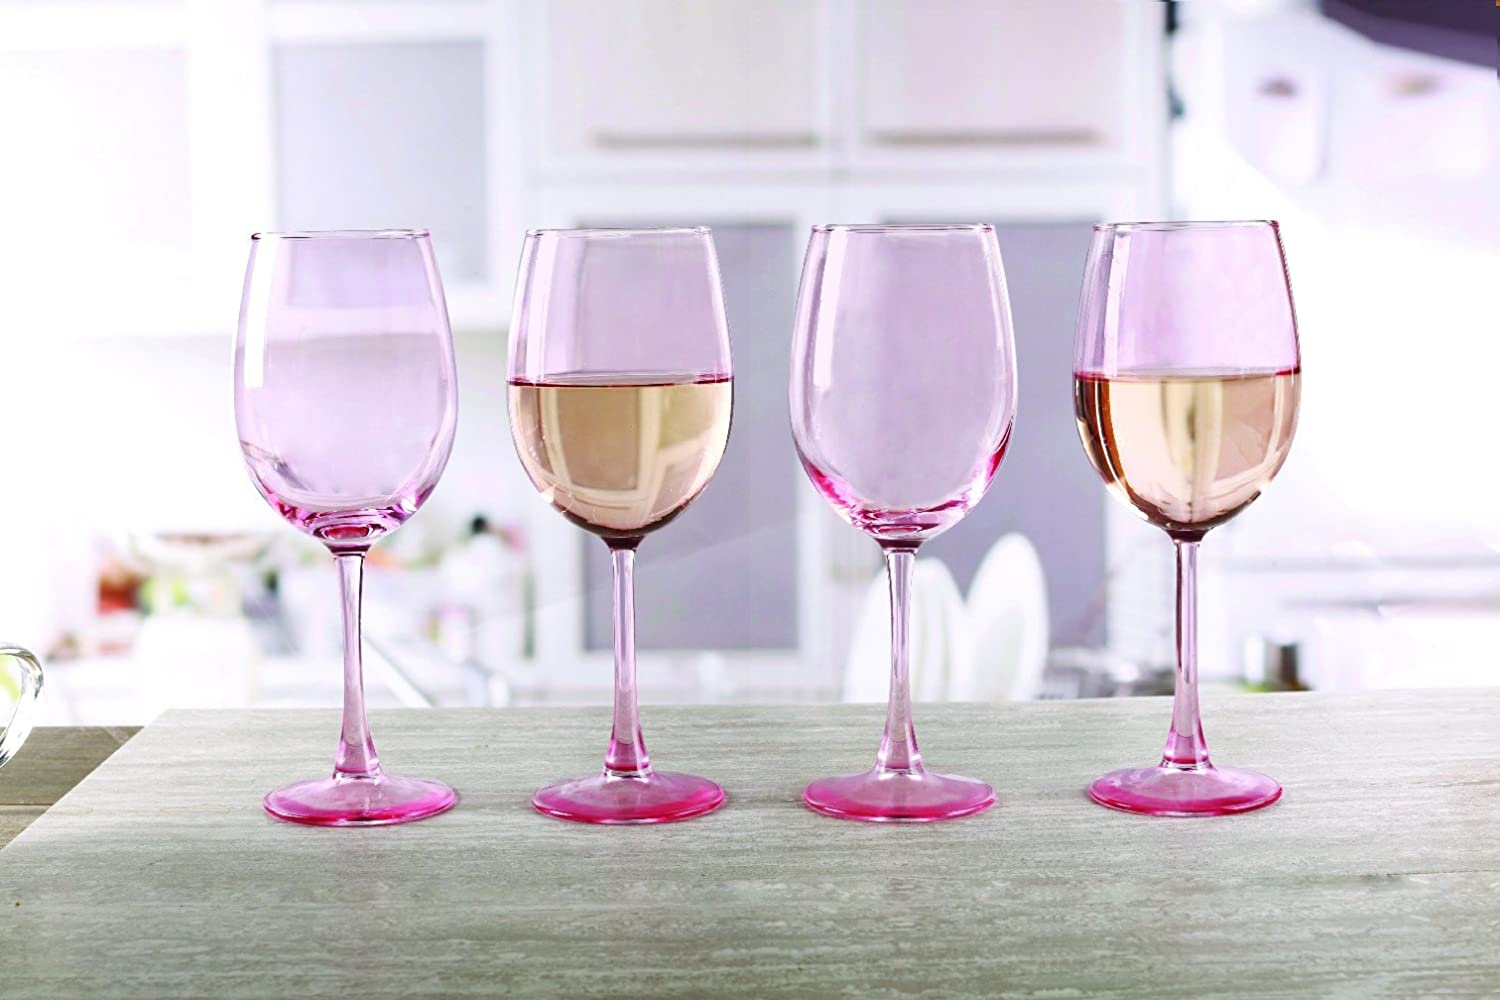 14.5 oz Juice Beer and Bar Liquor Dining Decor Beverage Gifts Set of 4 Cups Kitchen Entertainment Dinnerware Drinking Glasses Glassware for Water Circleware 44670 Calabria Rose Wine